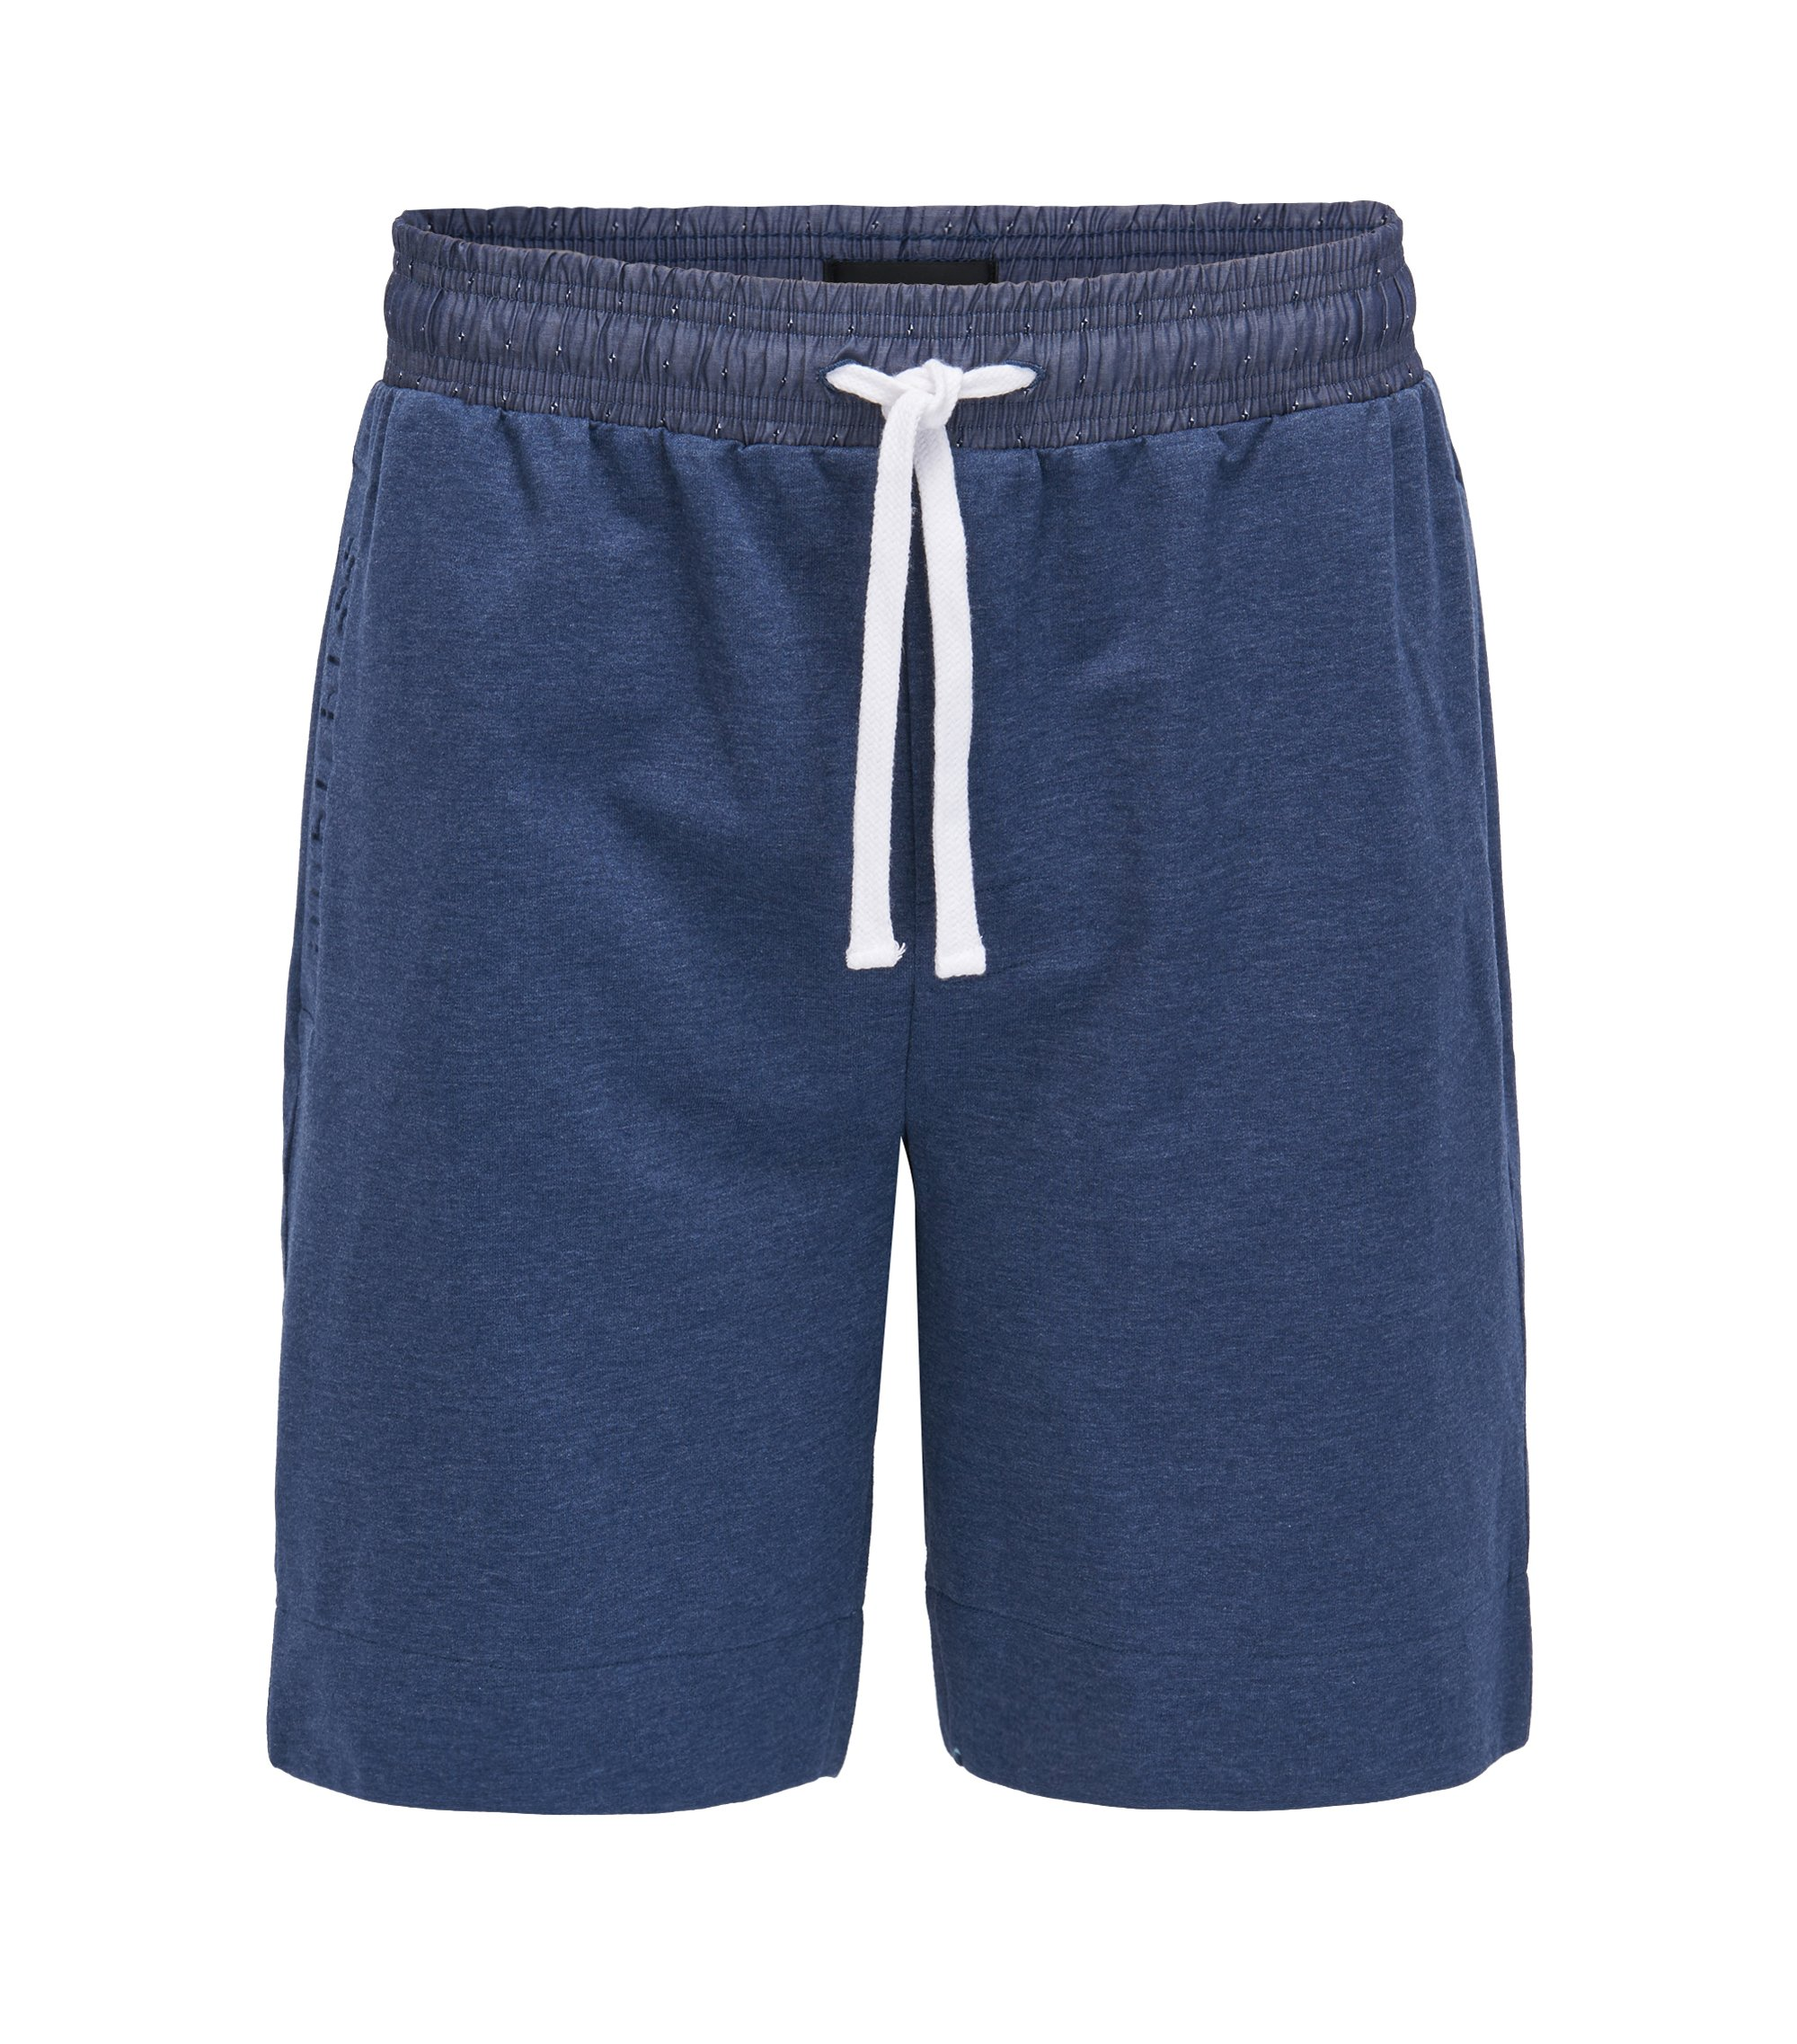 Pyjama-Shorts aus French Terry mit Tunnelzug, Hellblau